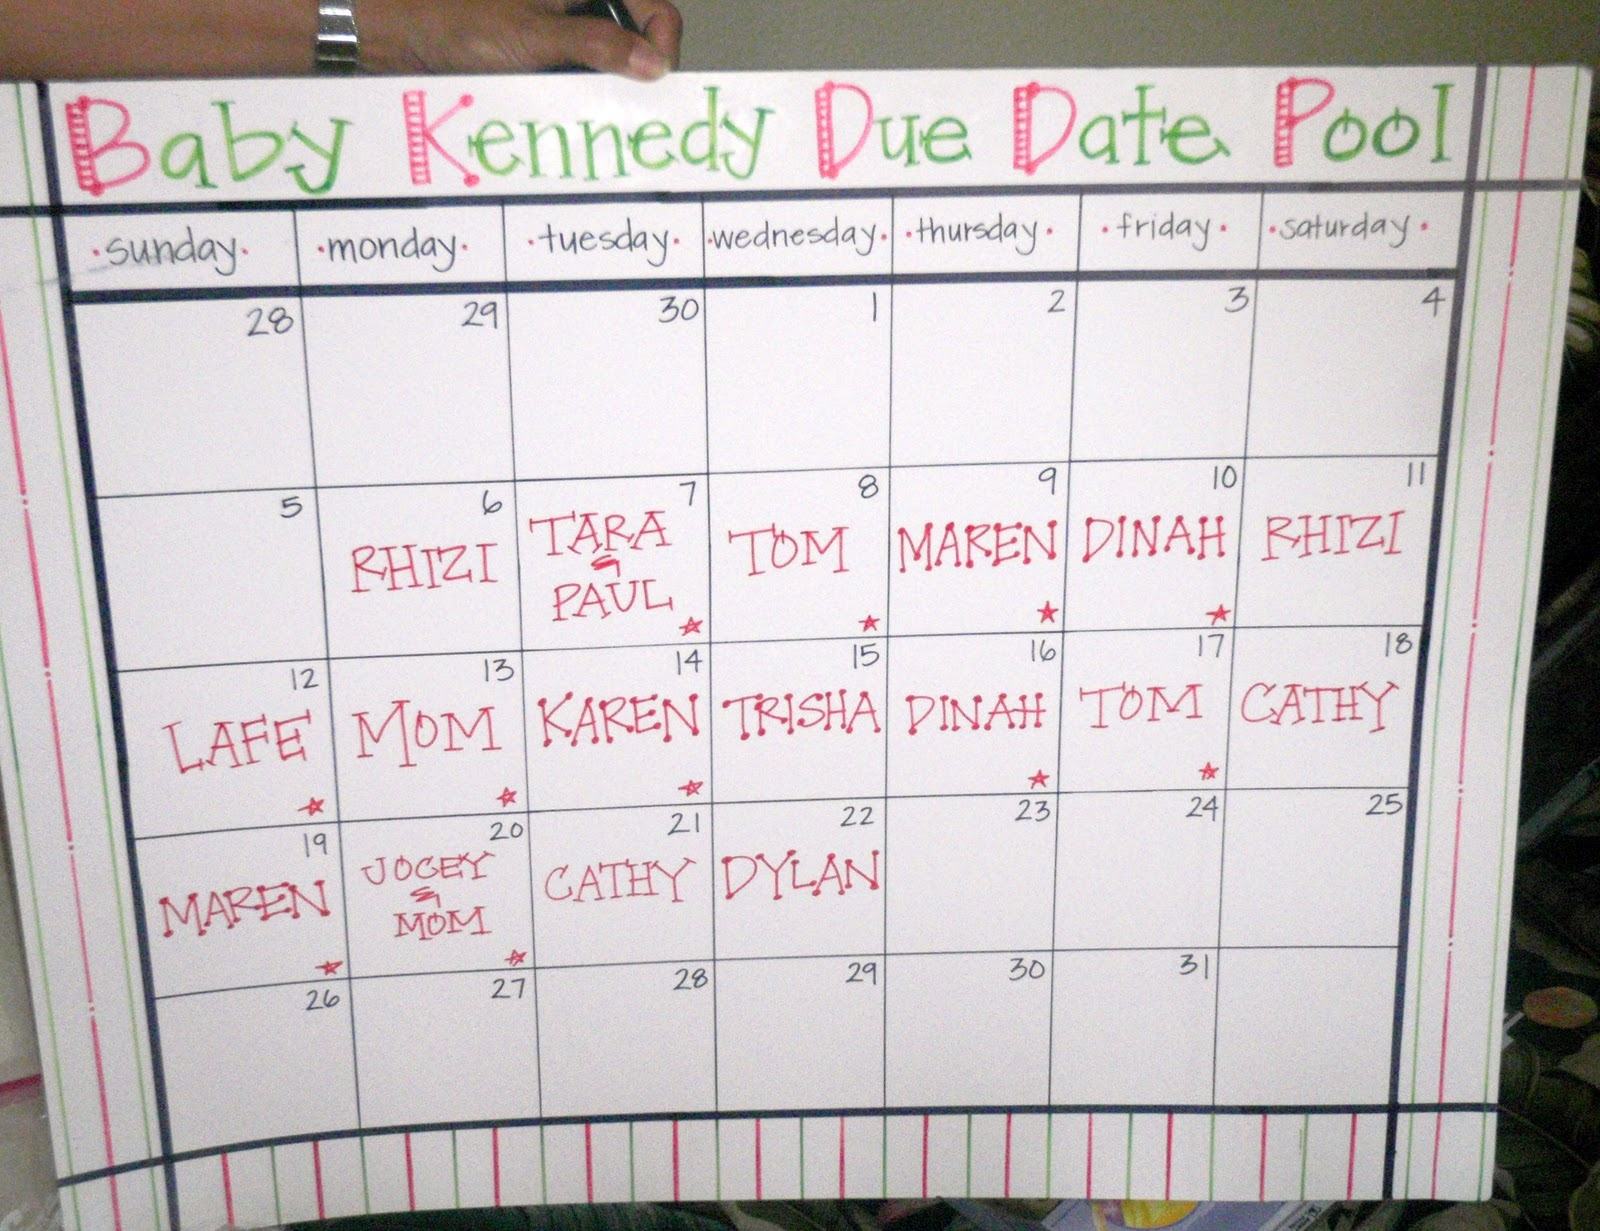 Make A Due Date Pool Poster Baby Shower Chart Ideas Our New Addition In 2019 Pinterest And